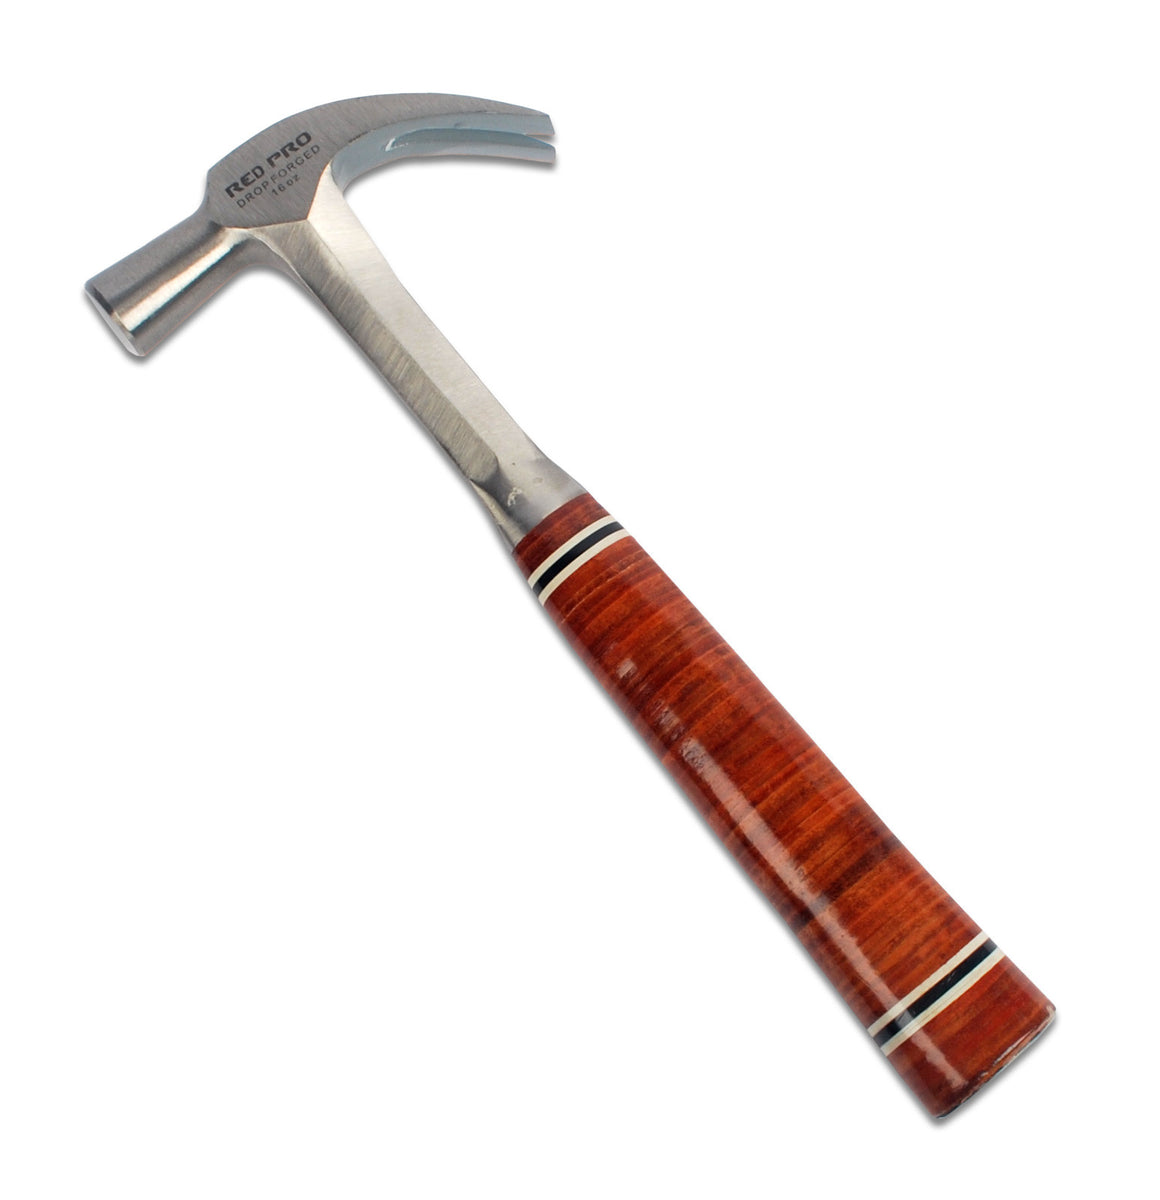 Red Pro Tools Leather Grip Claw Drop Forged Hammer - 16oz (Designed using the Estwing Claw Hammer)